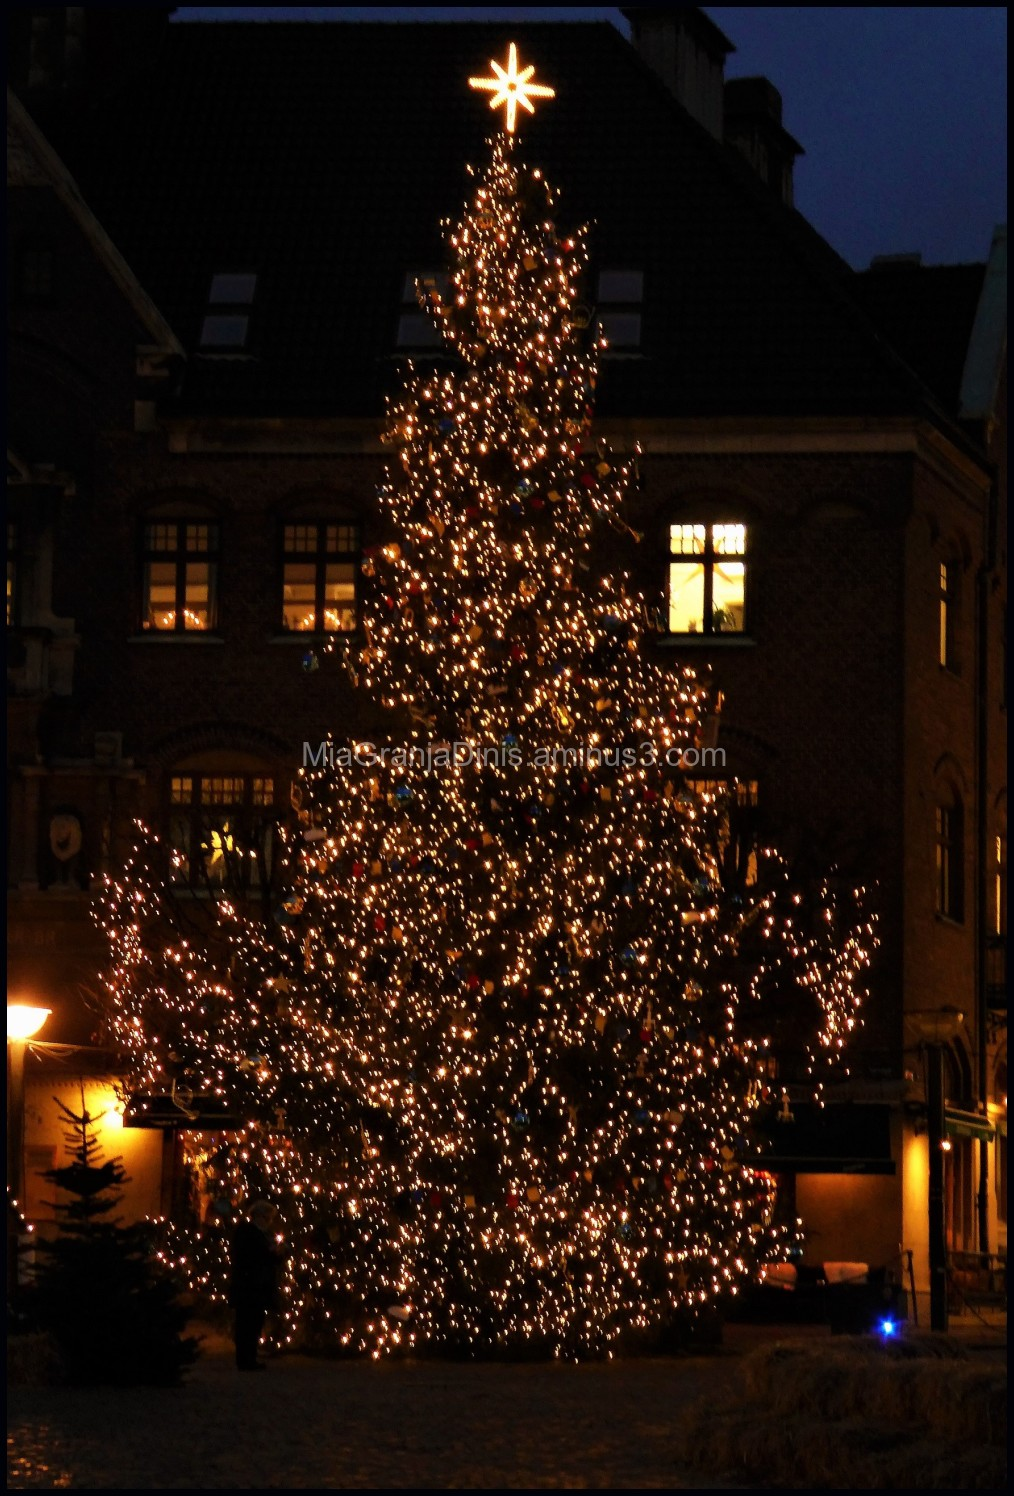 Christmas Tree in Lund City